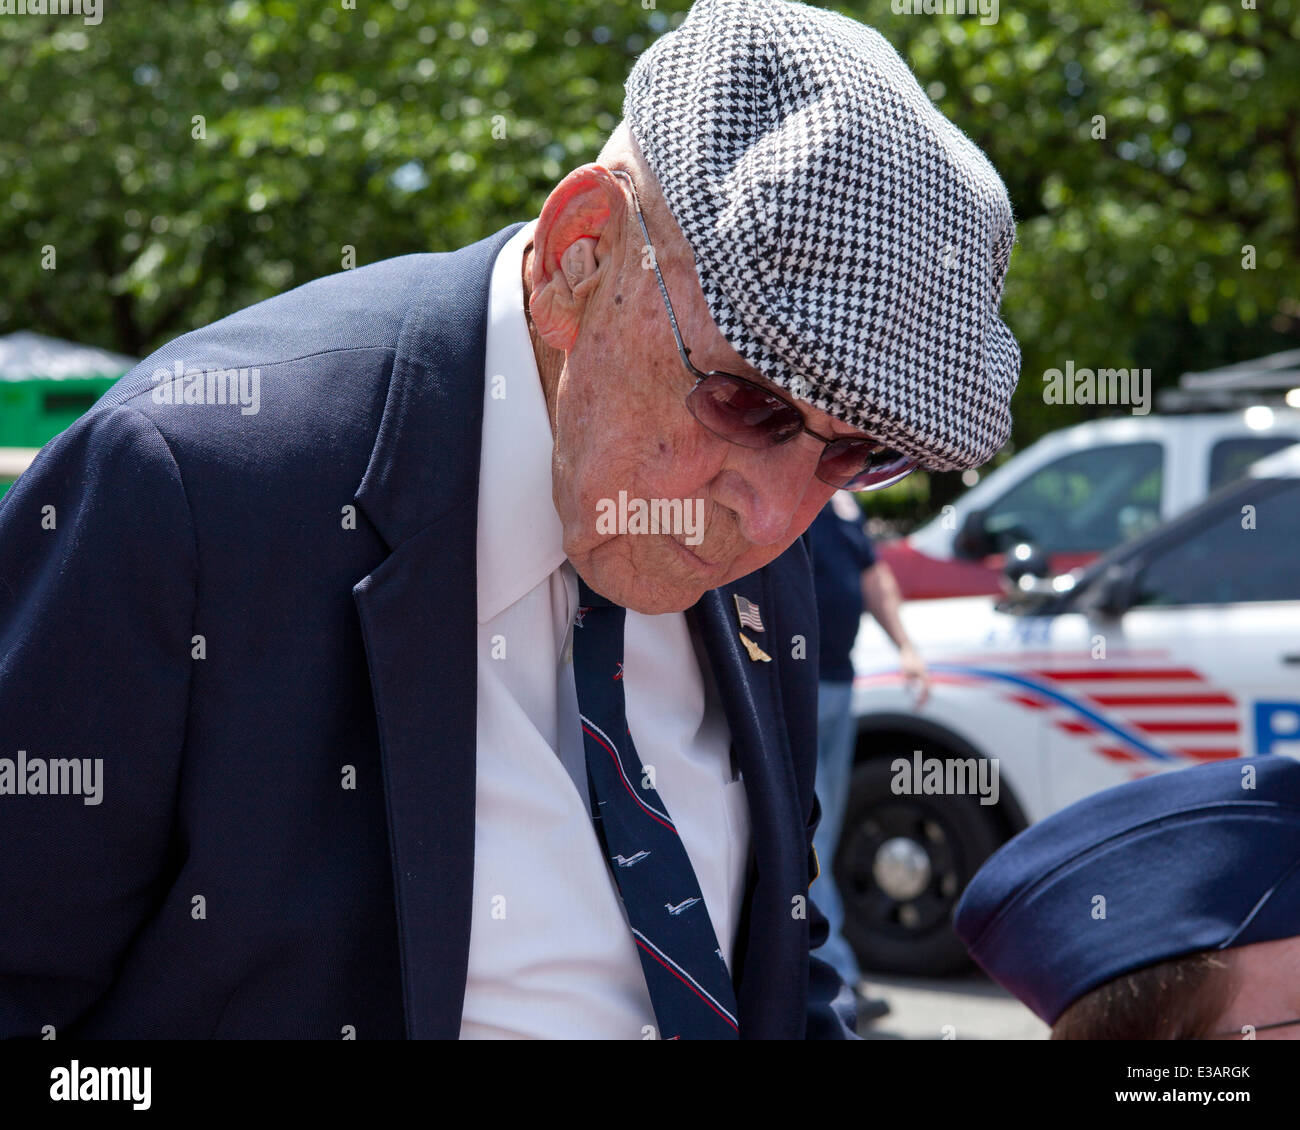 Lieutenant Colonel Richard Cole, the last living veteran of the Doolittle Raid in WWII, during the national Memorial - Stock Image